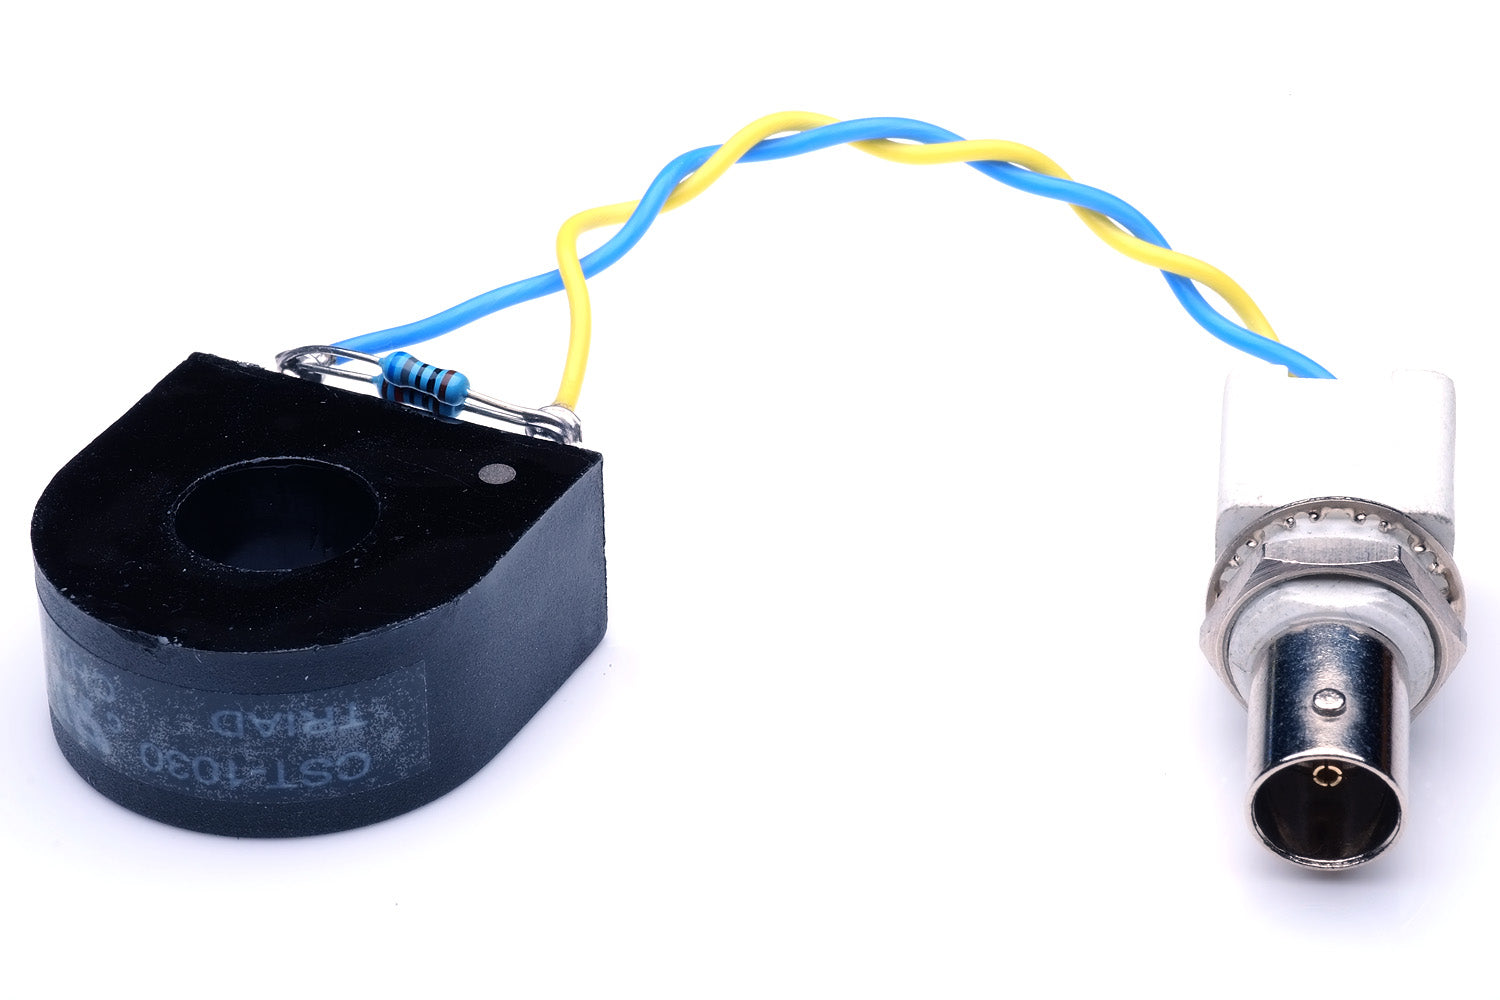 Cheap current probe made from Triad CST-1030 for measuring current with an oscilloscope